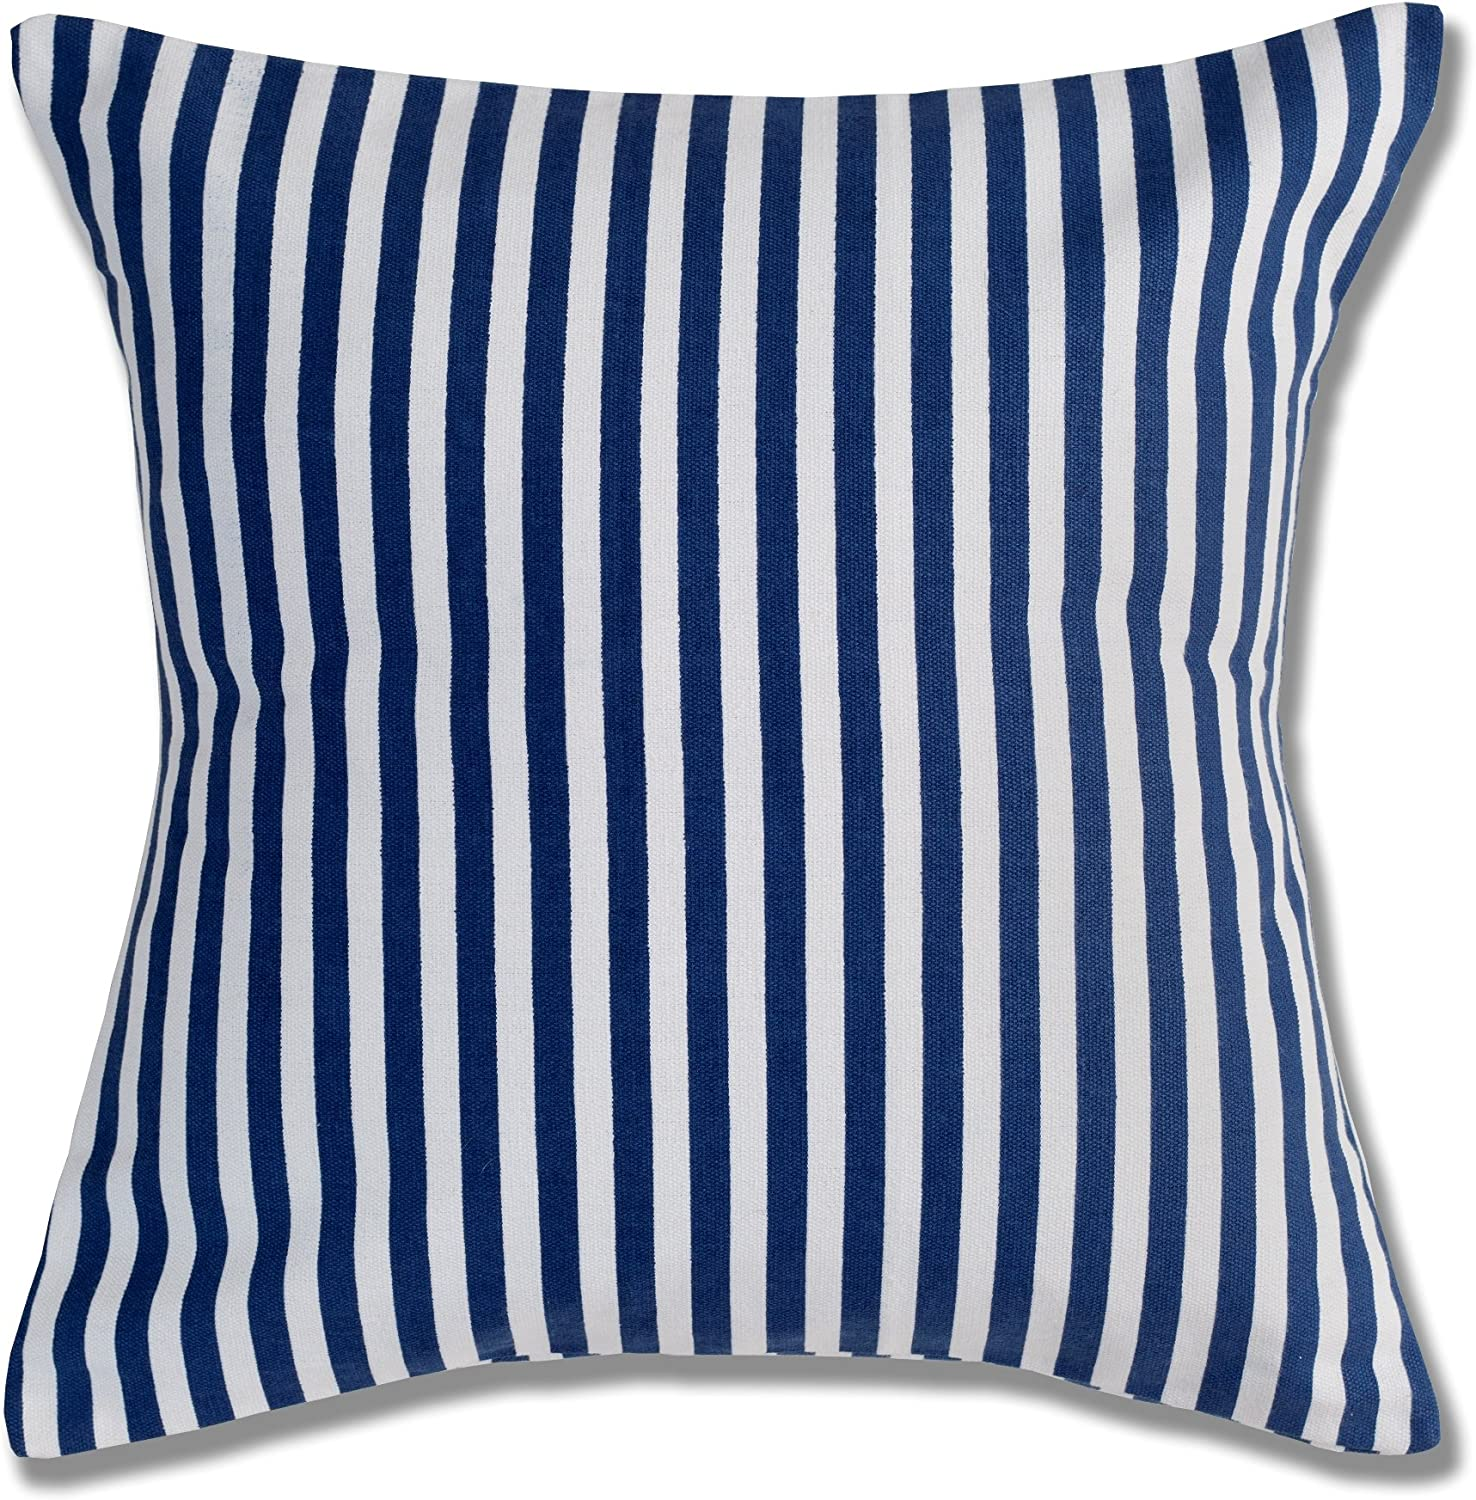 Style Homez Cotton Canvas Stripes Printed Cushion Medium Size Set of 2 Cover Only